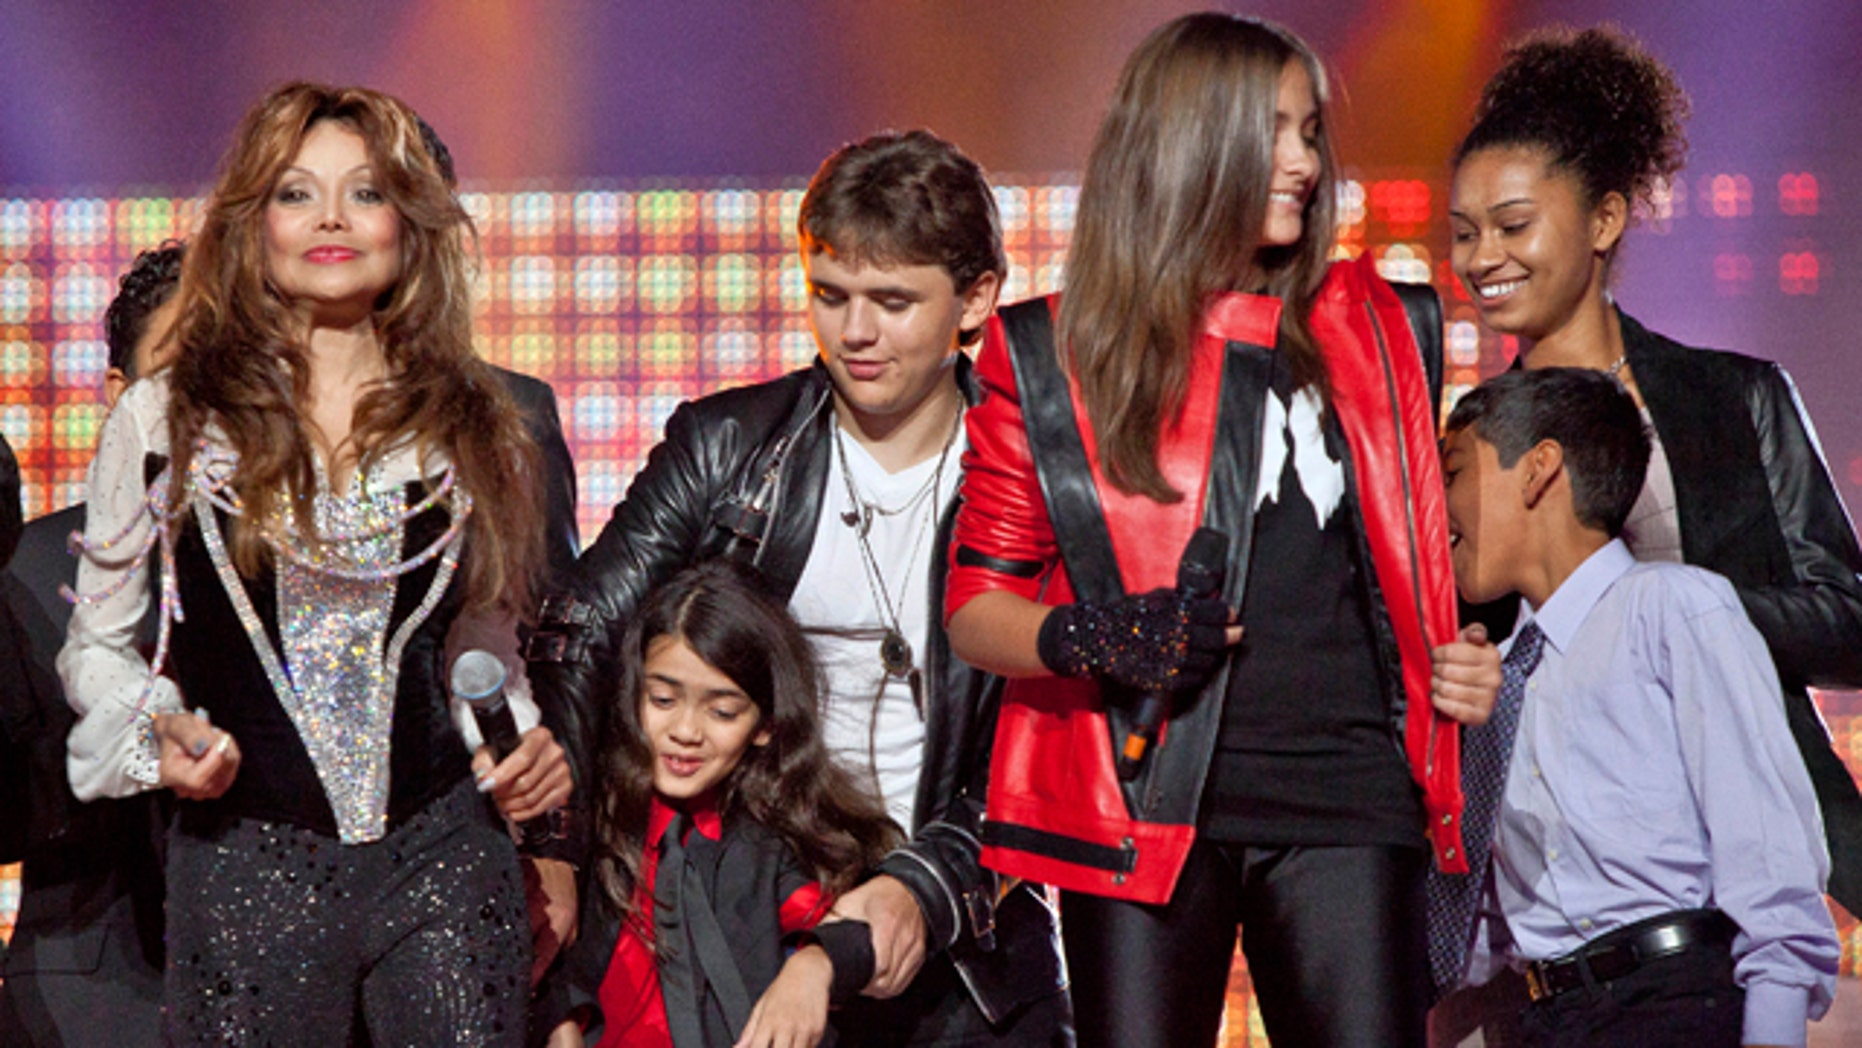 Oct. 8: From left, Latoya Jackson, Blanket Jackson, Prince Jackson, Paris Jackson and others join together on stage for the finale of the Michael Forever the Tribute Concert, at the Millennium Stadium in Cardiff, Wales.